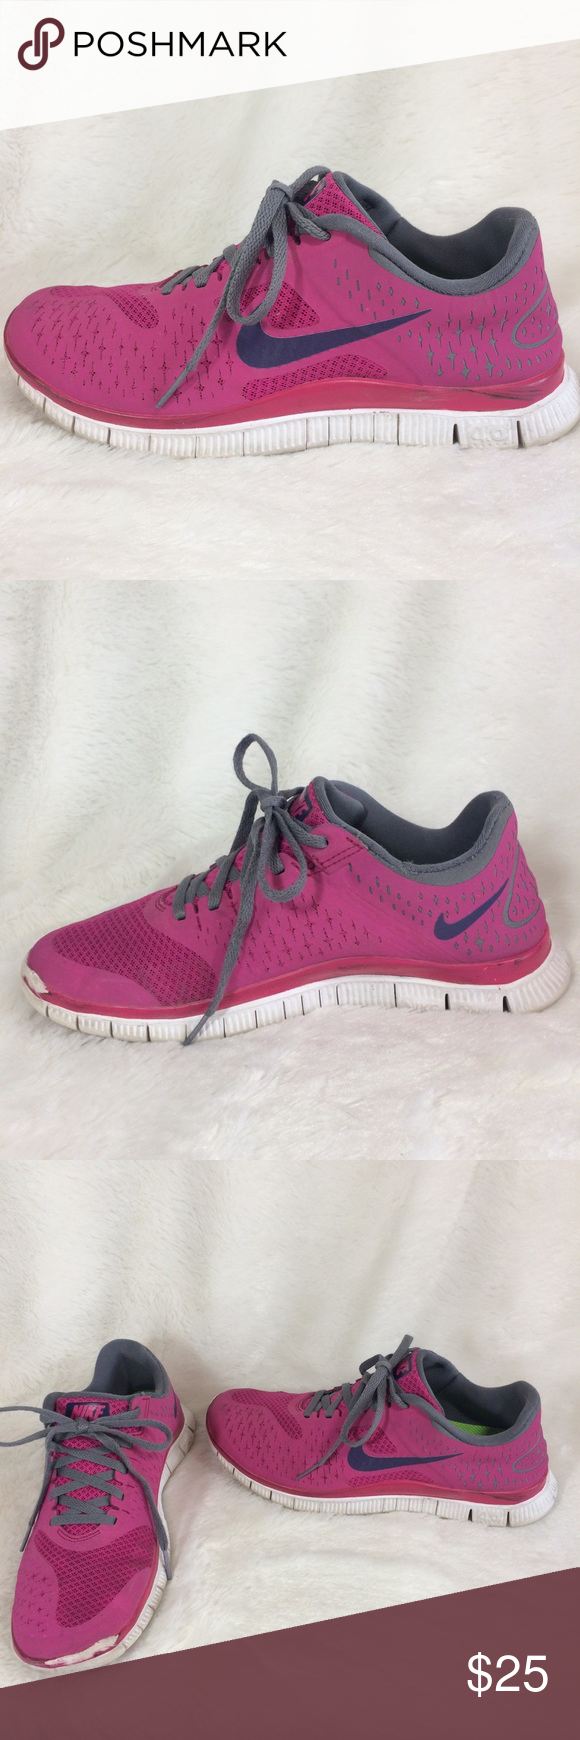 50% alennus Tarjouskoodi New York Nike Free 4.0 V2 Purple Pink Athletic BRS 1000 7.5 Pre-Owned ...